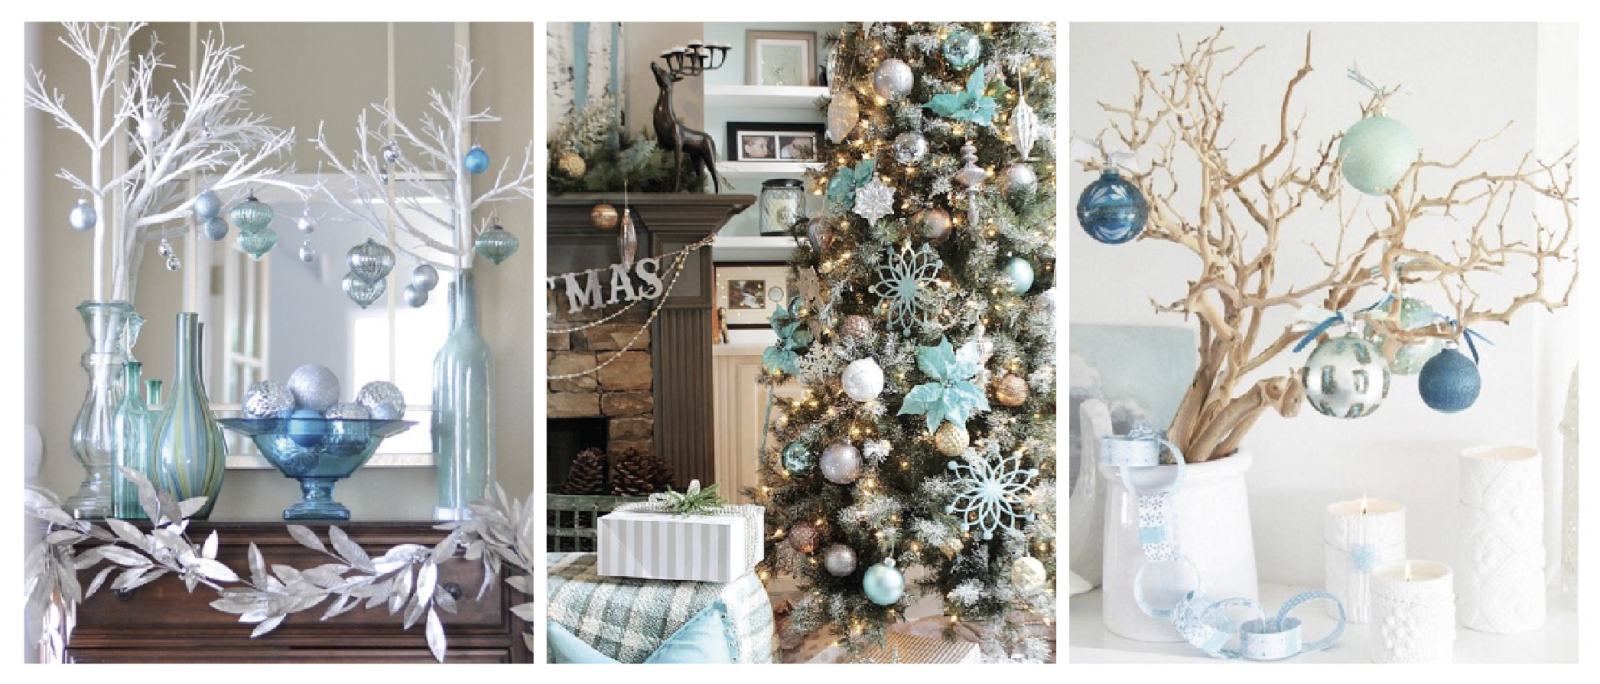 Decoration de noel tendance 2016 - Sapin de noel decoration tendance ...